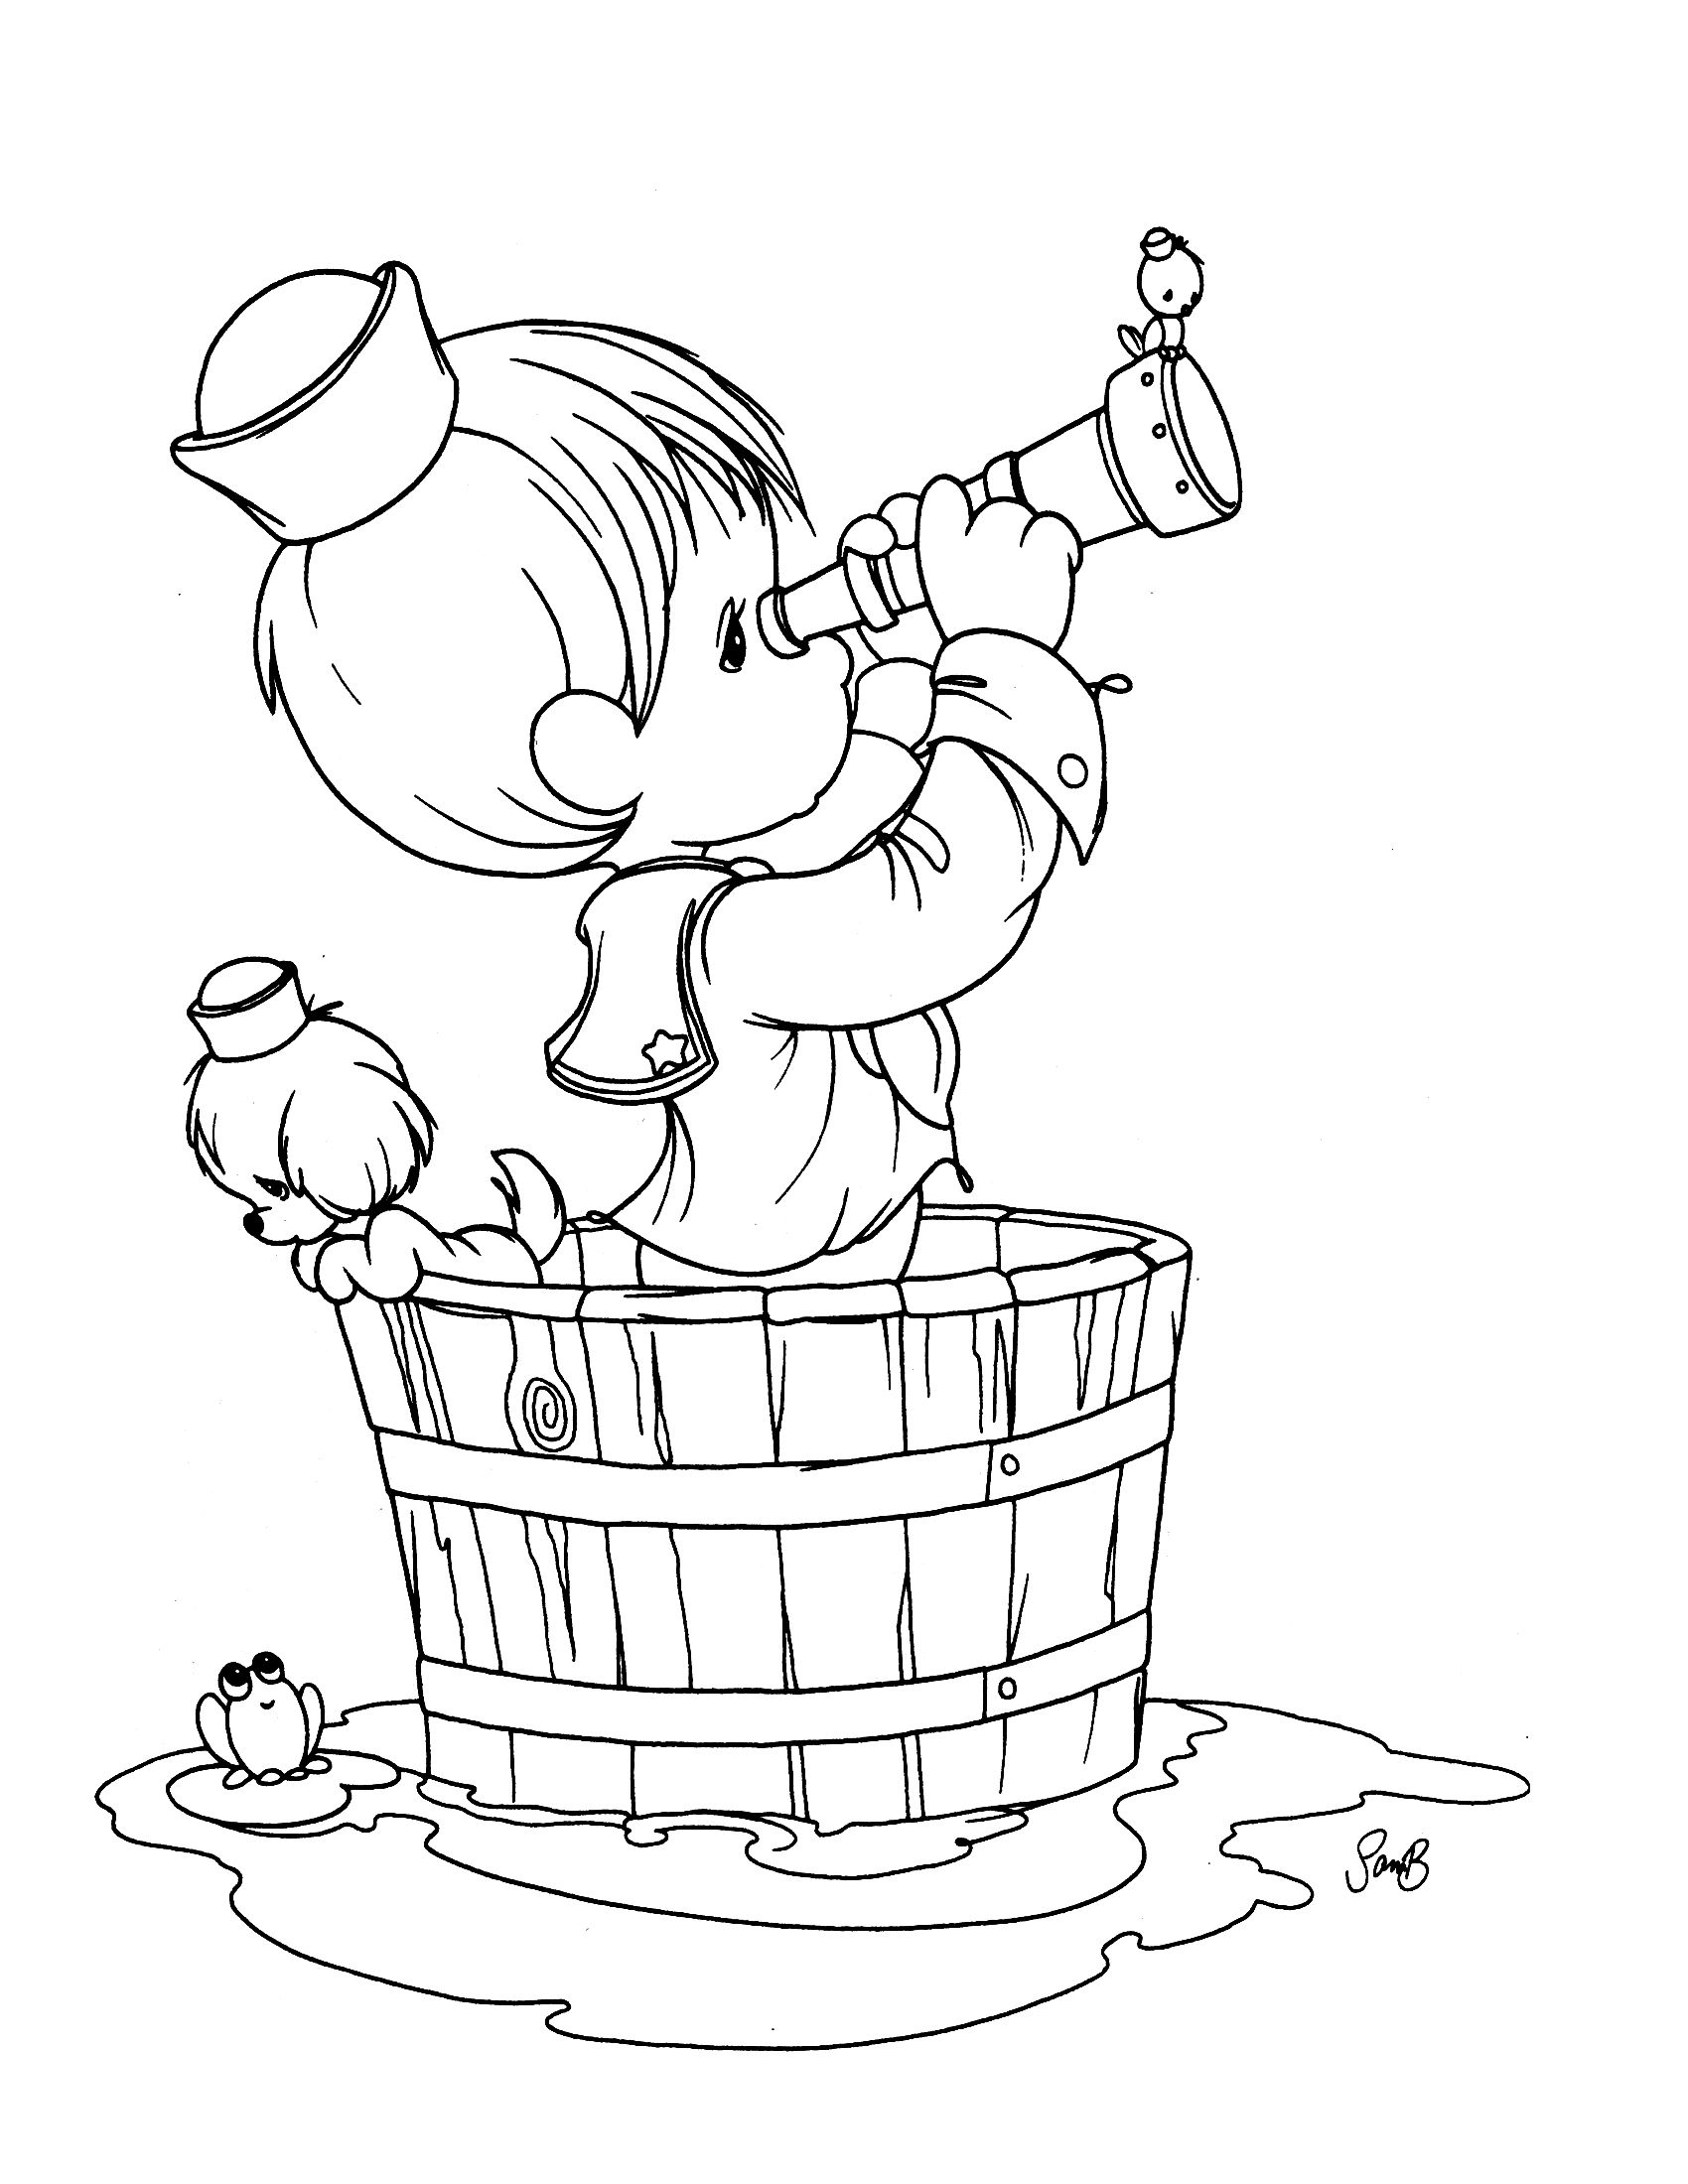 Precious Moments Coloring Page Precious Moments Coloring Pages